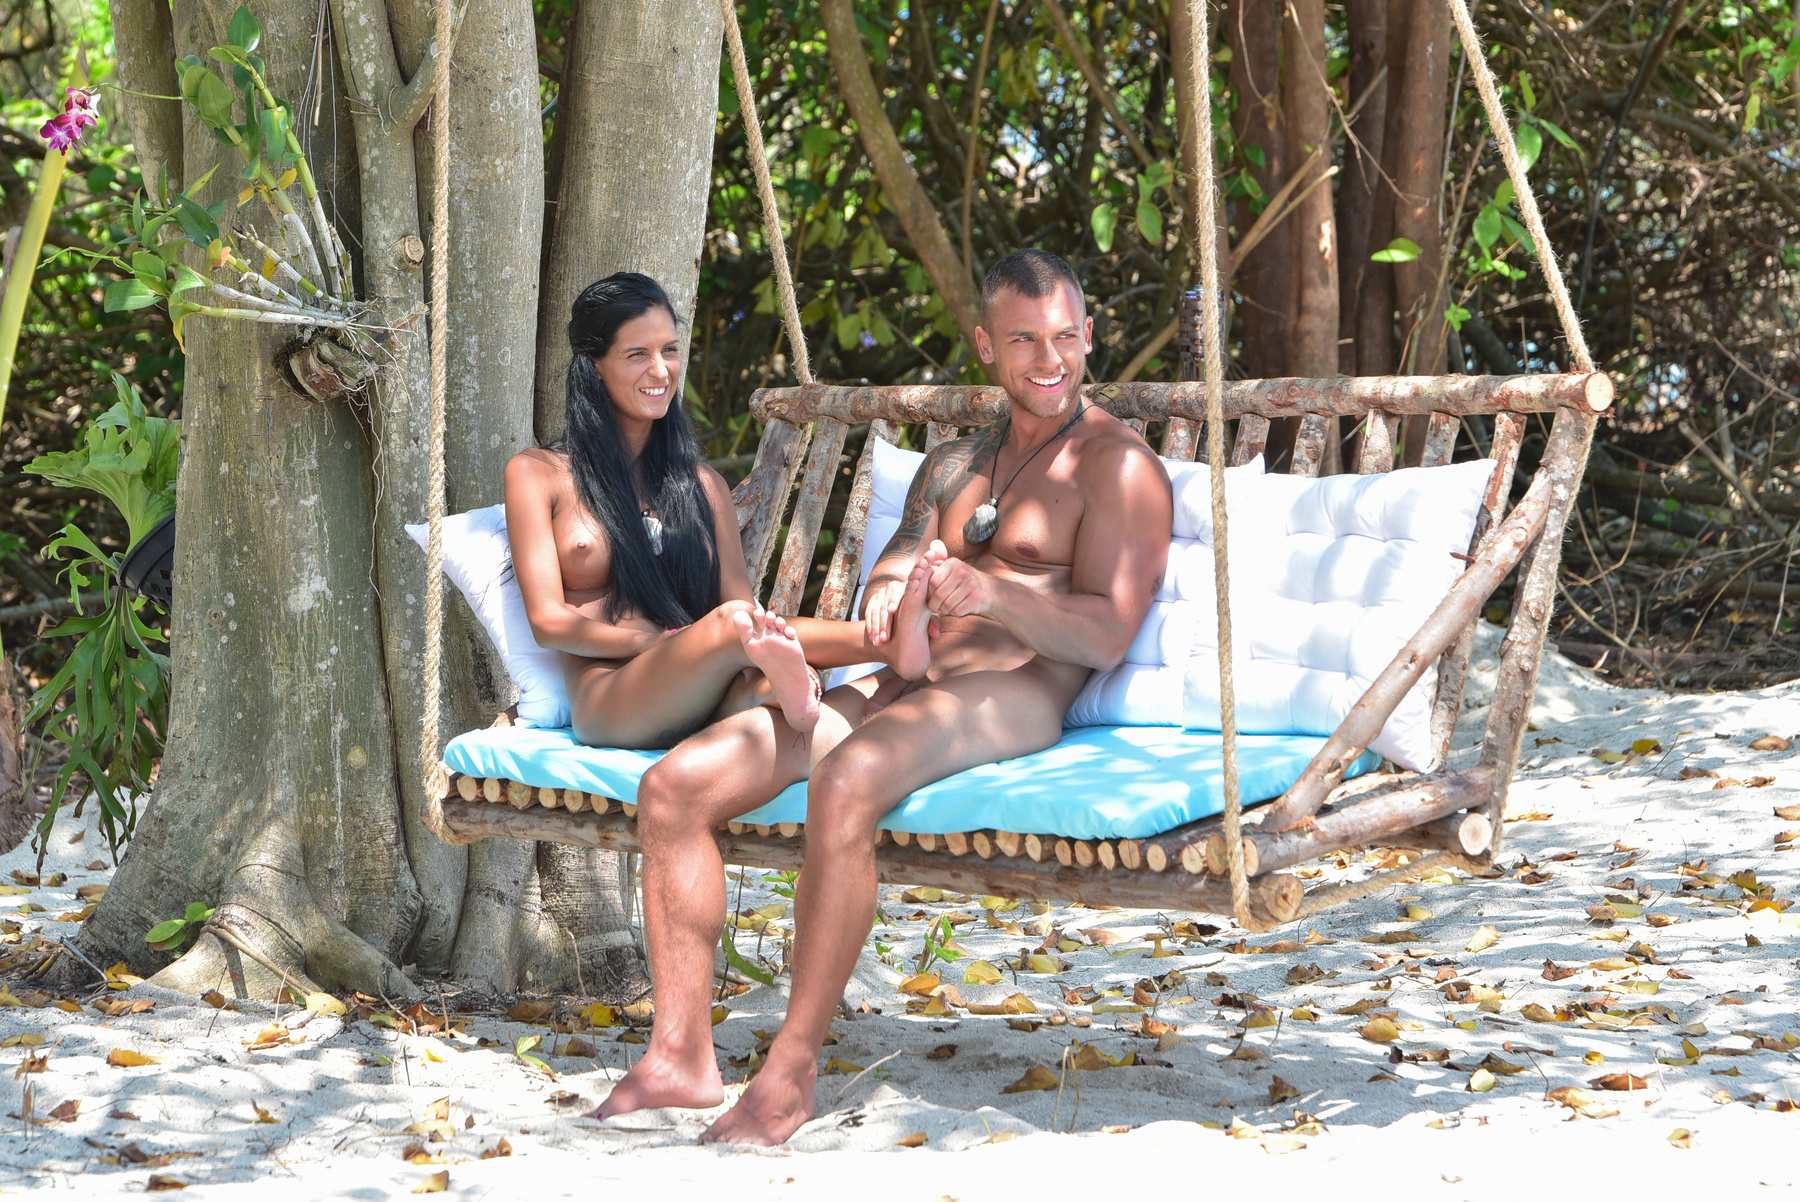 Adam and eve dating show sbs6 4